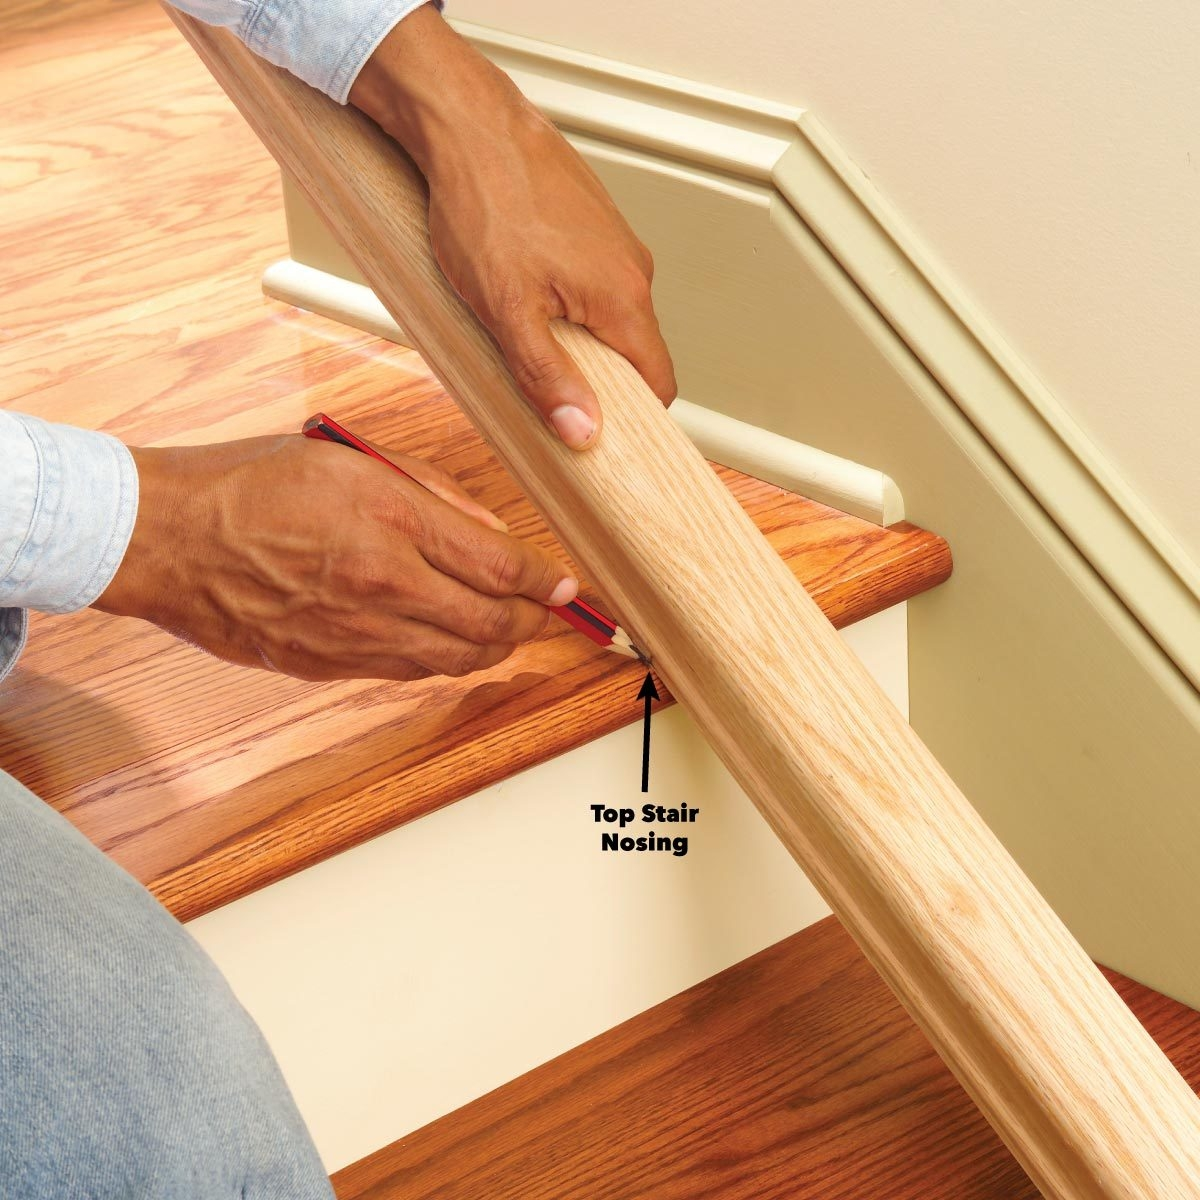 Install A New Stair Handrail   Stair Banisters And Railings   Baby Proof   Rustic   Split Level   Pinterest   Landing